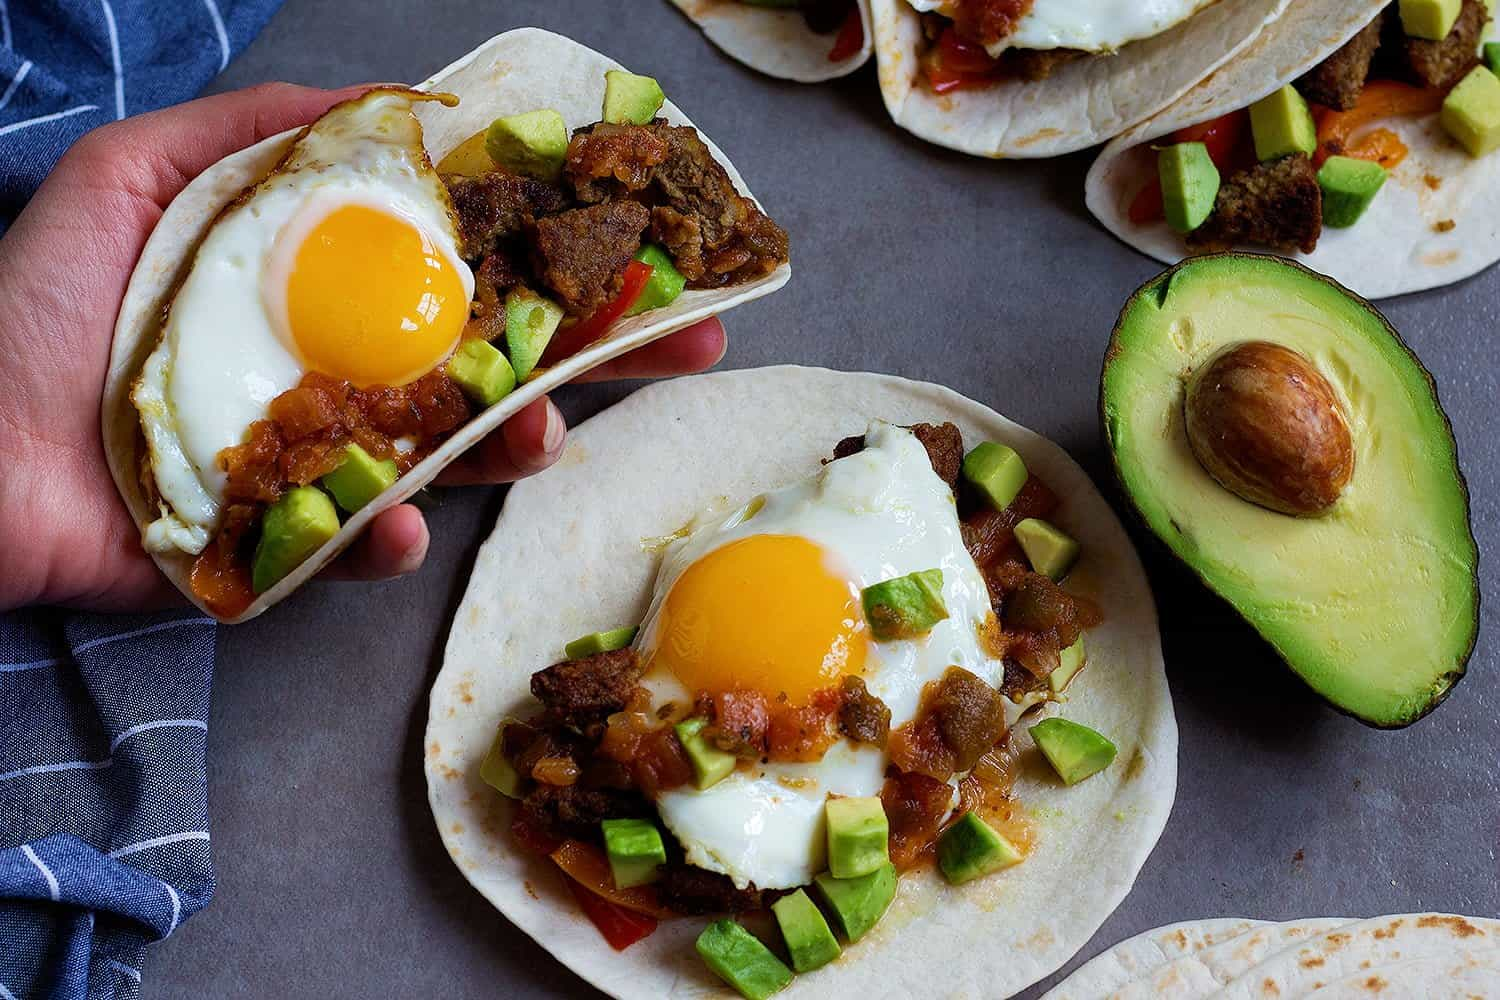 Breakfast Tacos Recipe - Tortillas filled with vegetarian sausage, avocados, onions, peppers and topped with a delicious sunny side up egg.